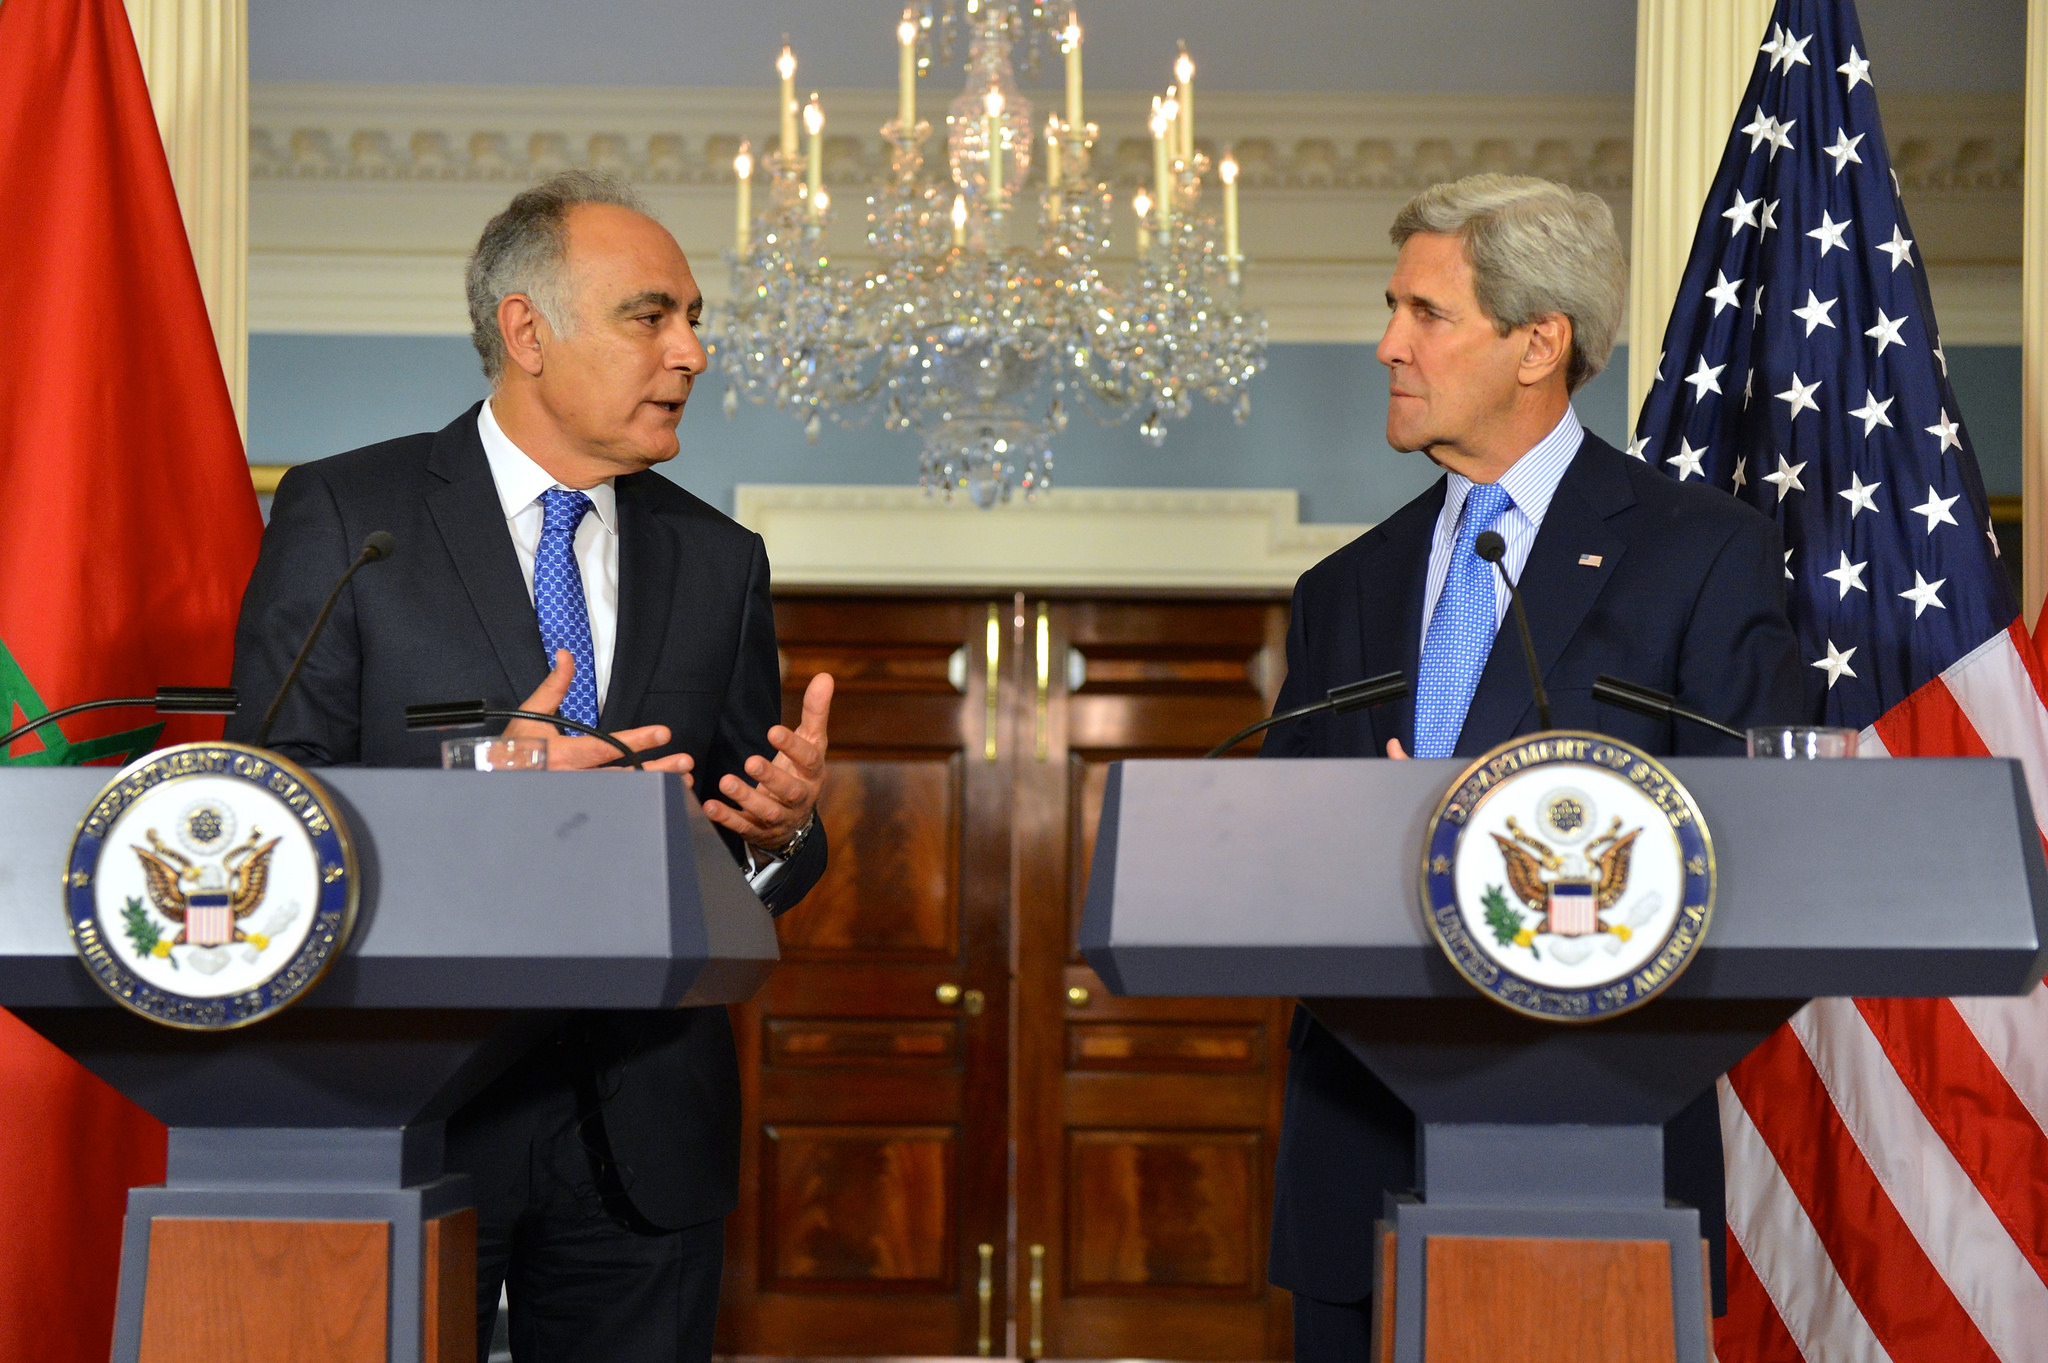 Morocco's Minister of Foreign Affairs Salaheddine Mezouar and US Secretary of State John Kerry at the State Department April 9, 2015. Photo credit: State Department.